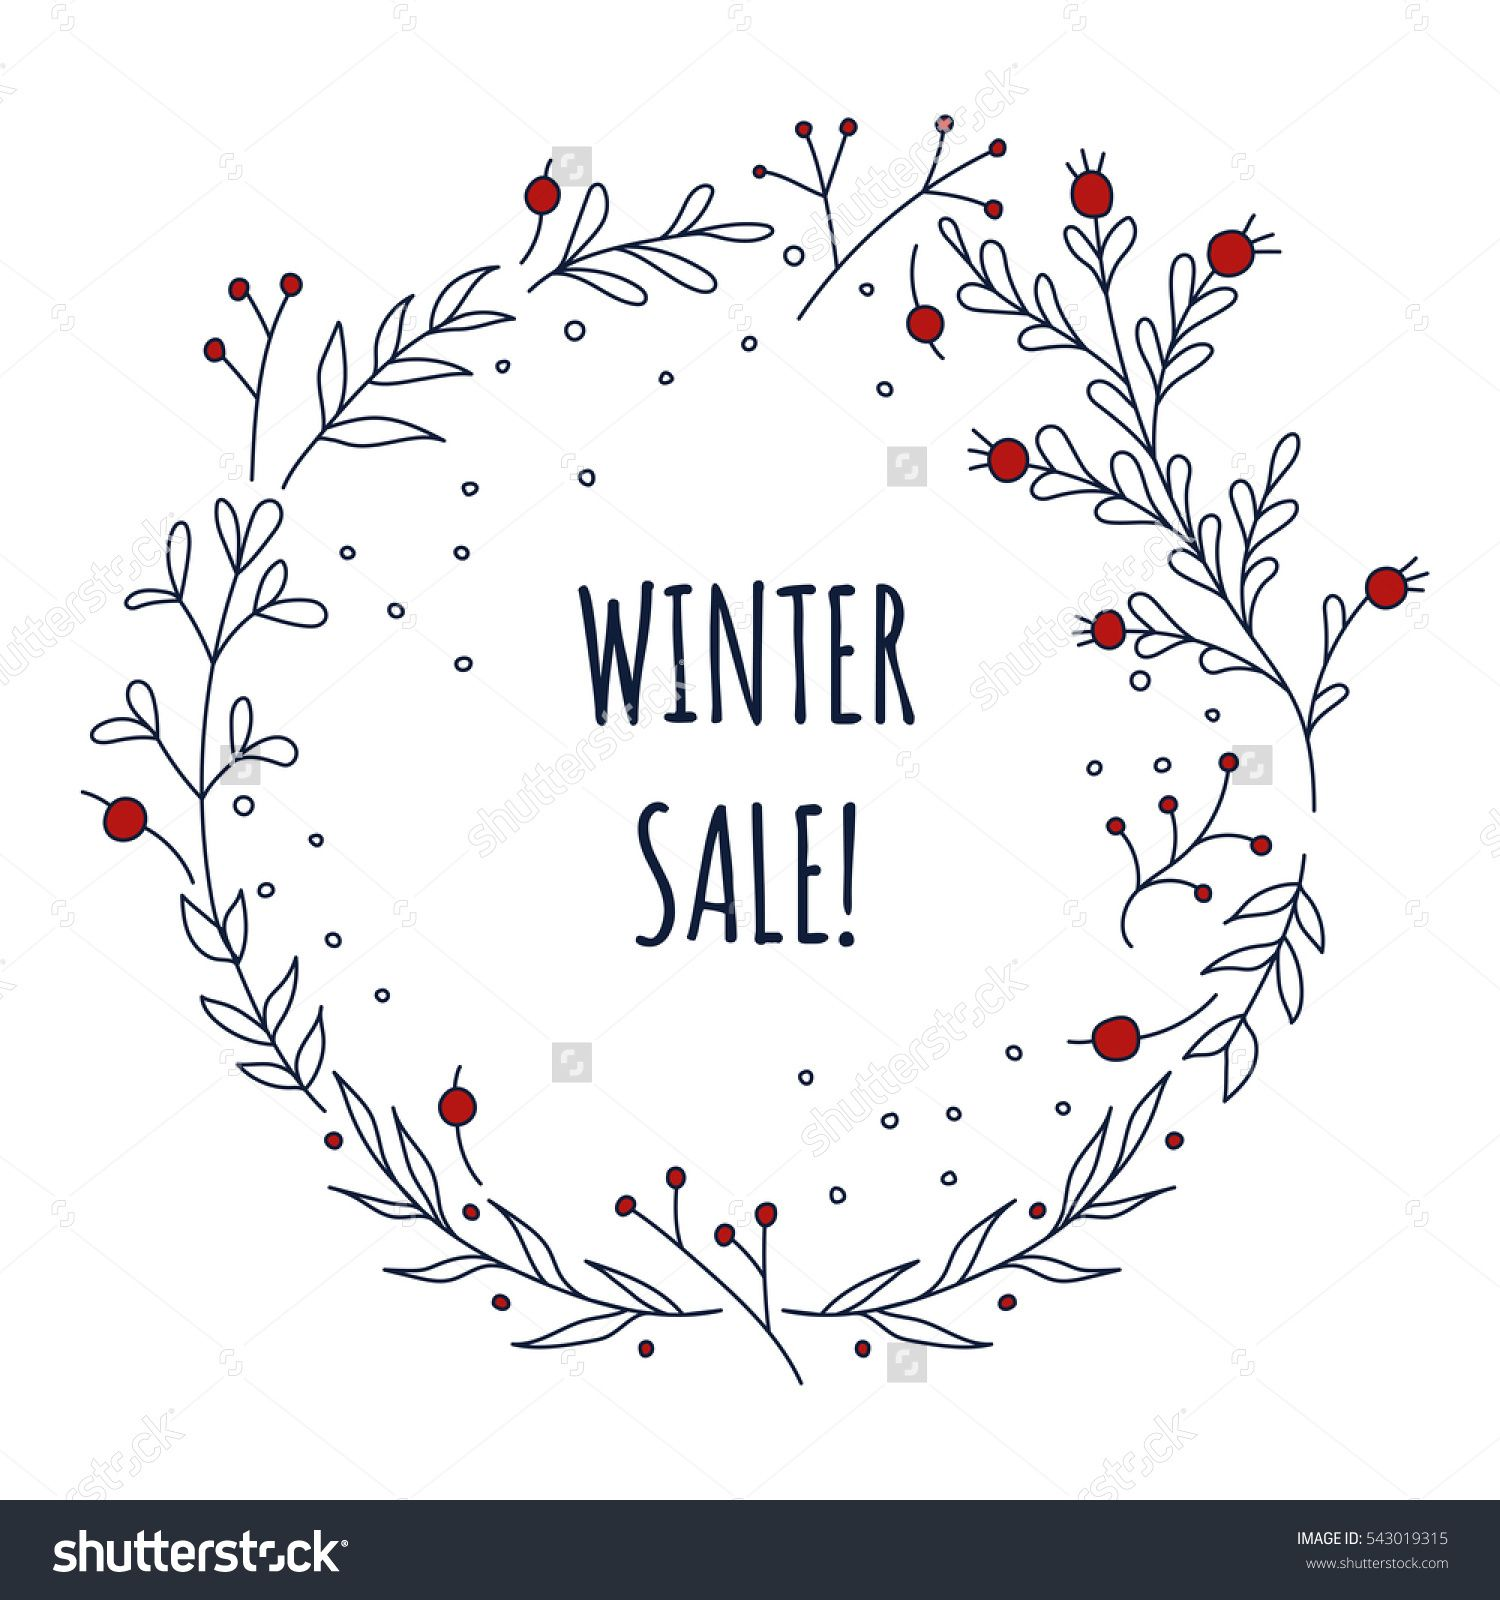 Photo of Christmas New Year Winter Sale Hand Stock Vector (Royalty Free) 543019315